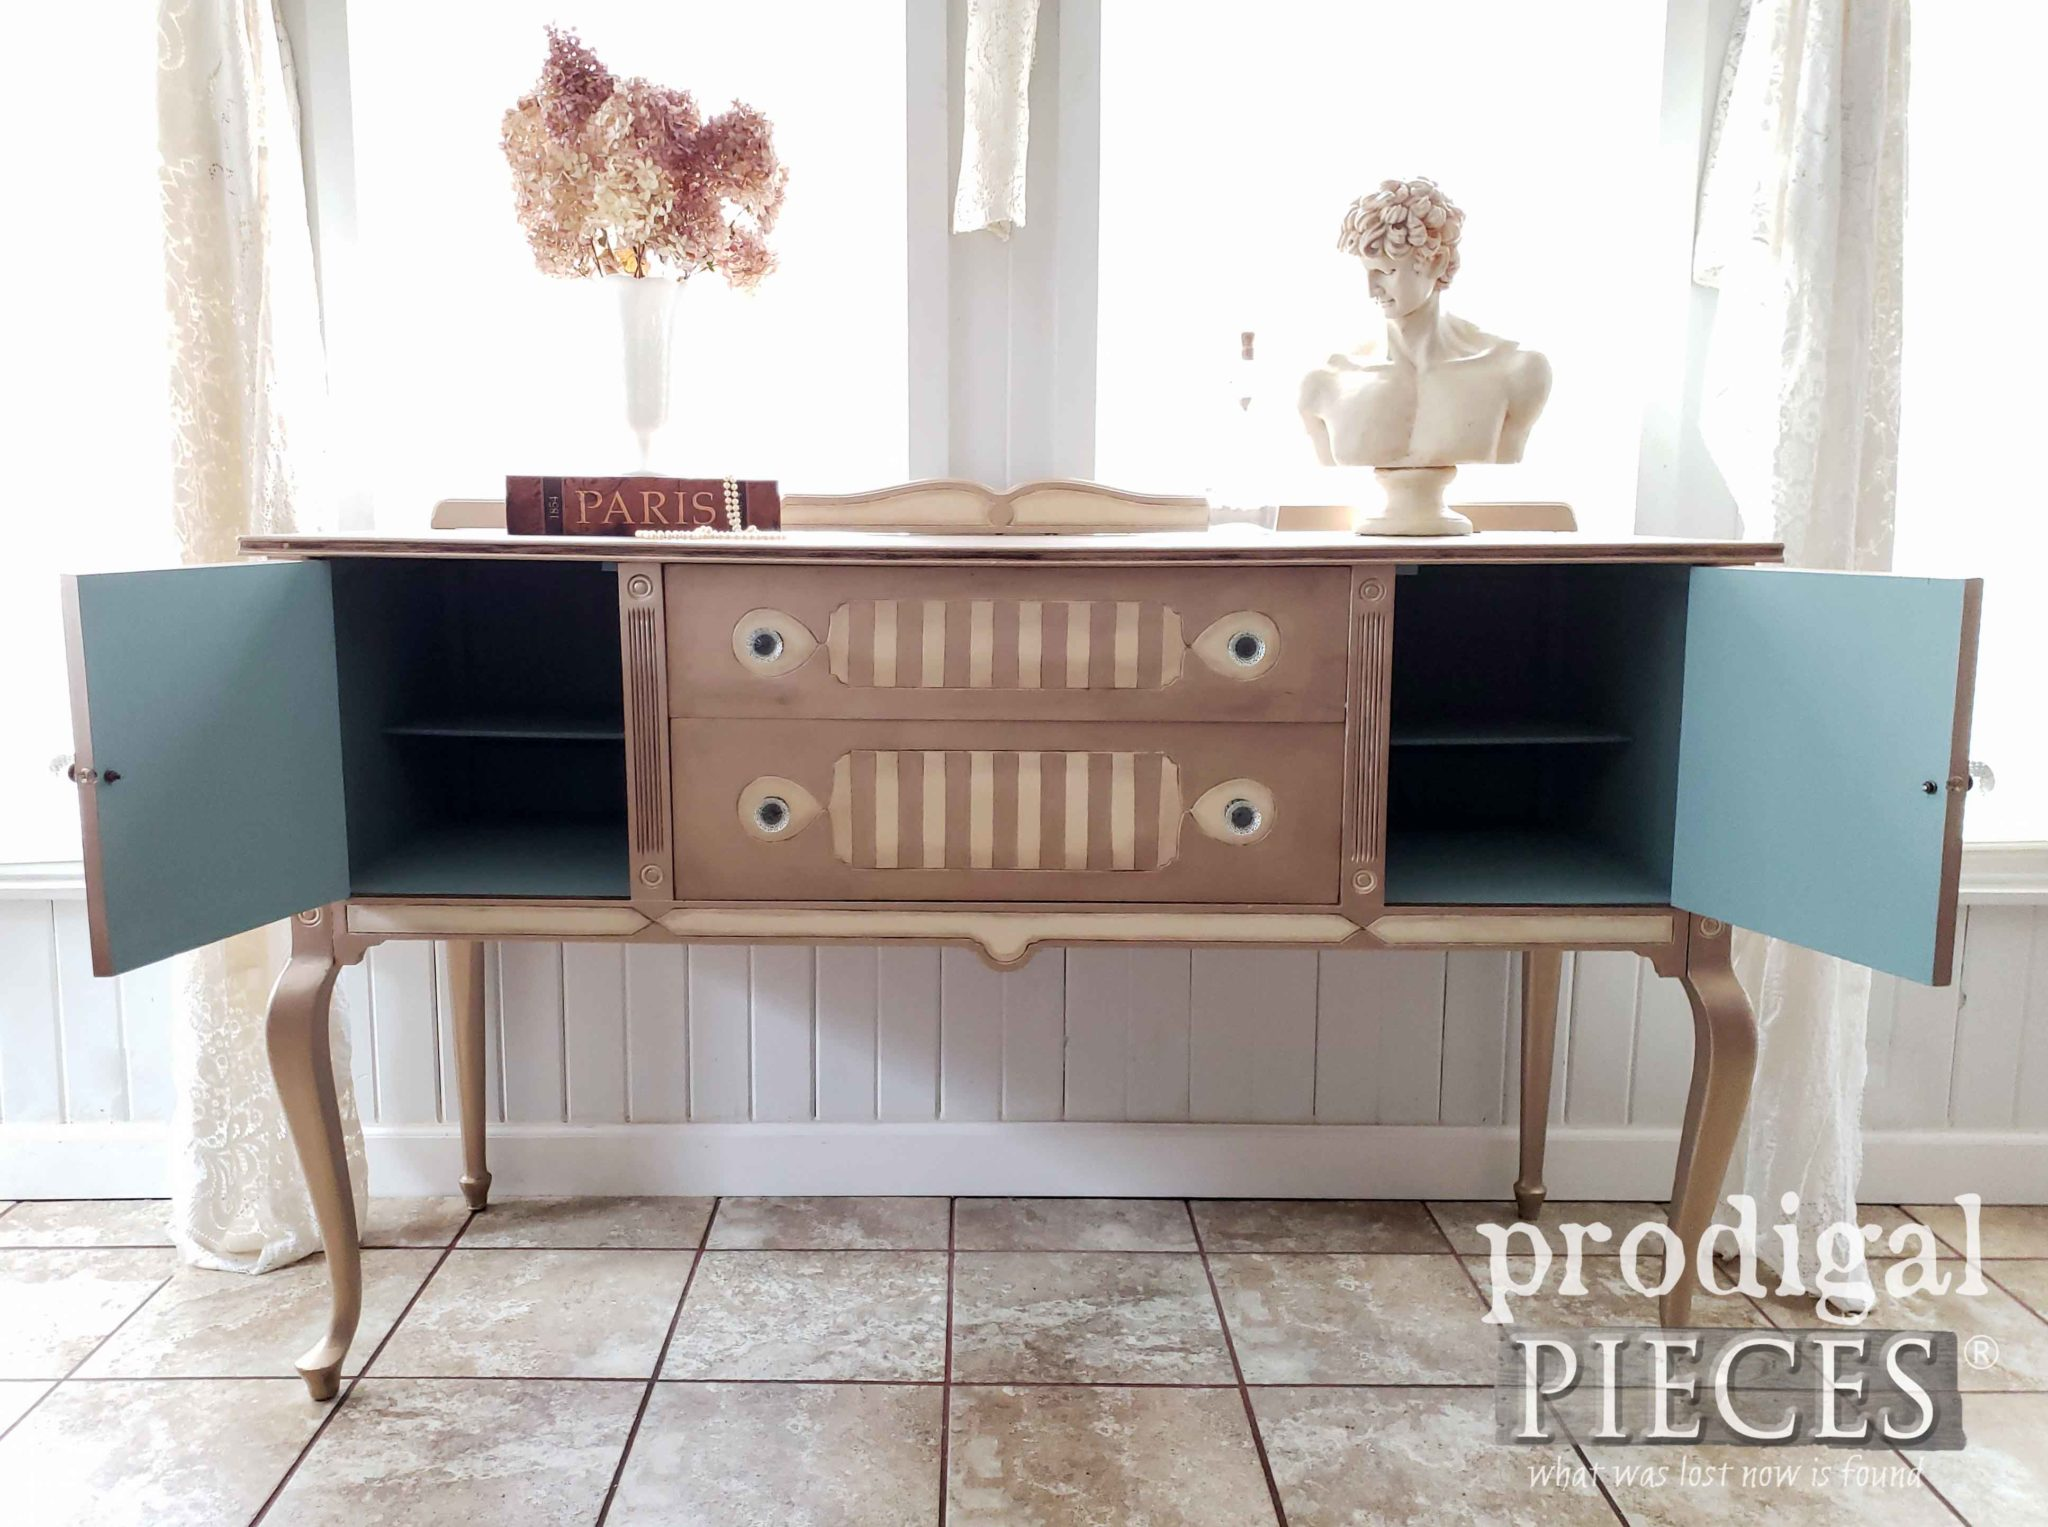 Painted Interior of Antique Buffet Adds a Pop of Color | by Larissa of Prodigal Pieces | prodigalpieces.com #prodigalpieces #diy #home #homedecor #furniture